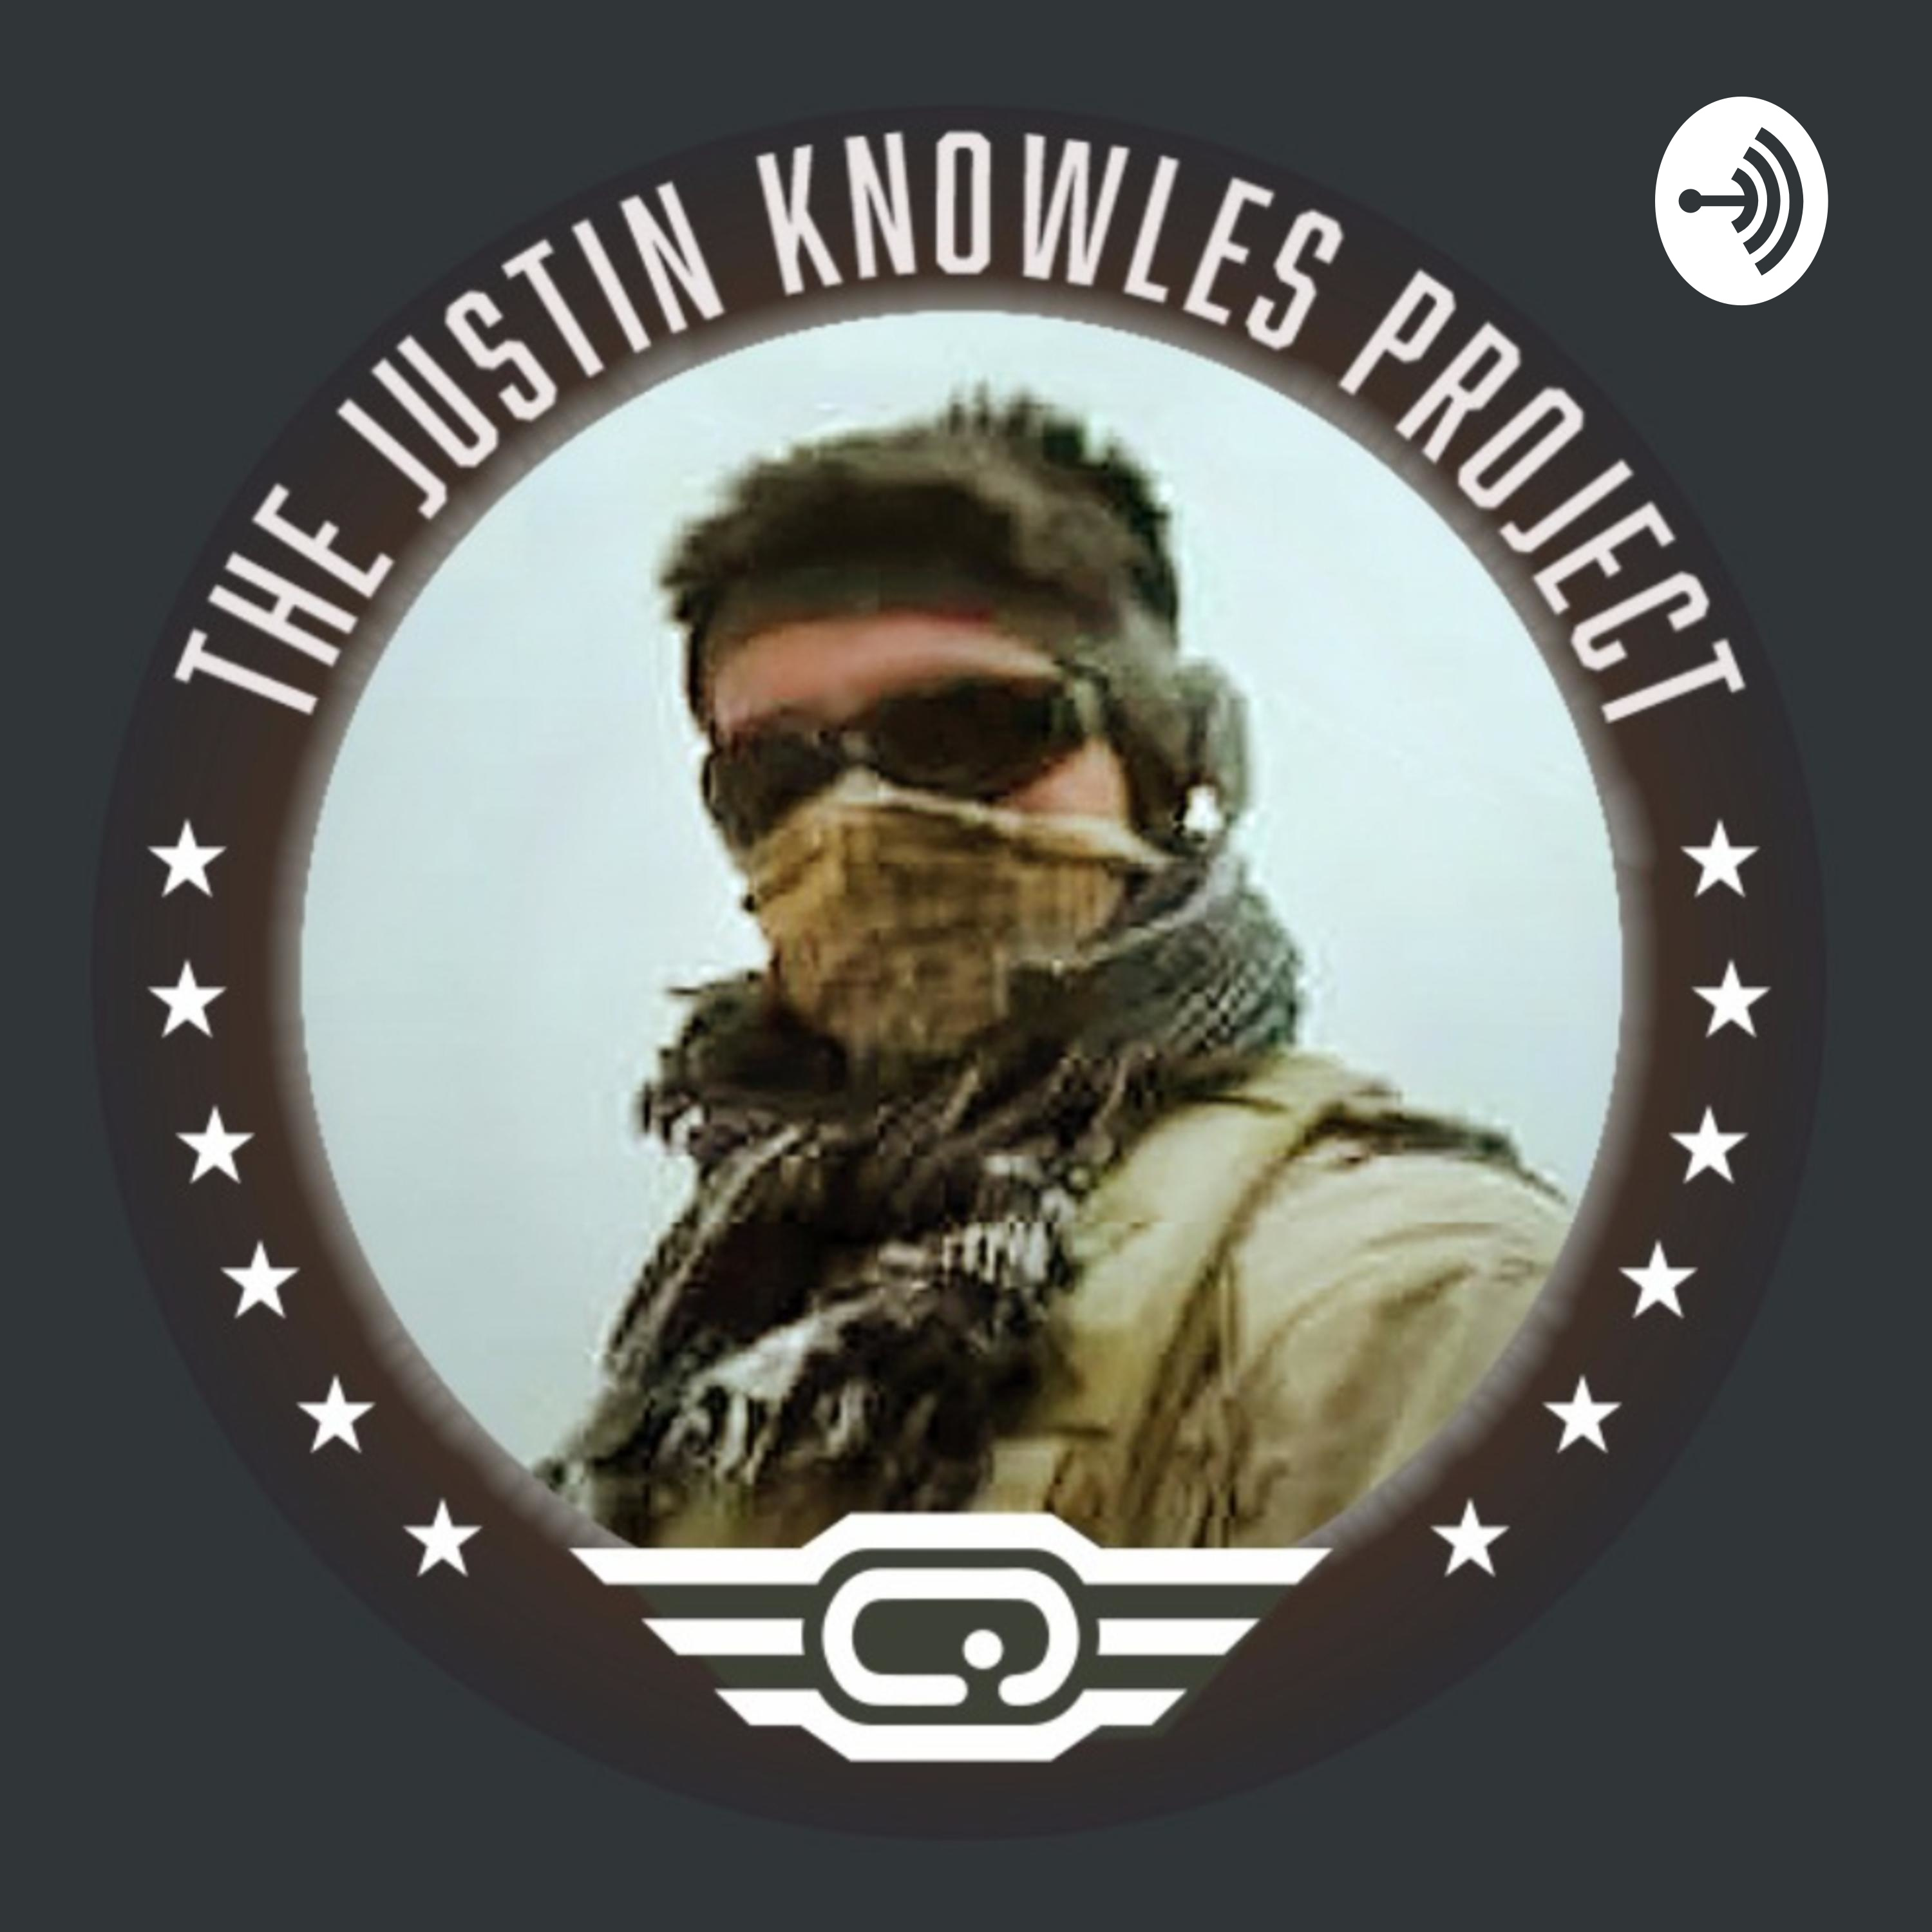 The Justin Knowles Project